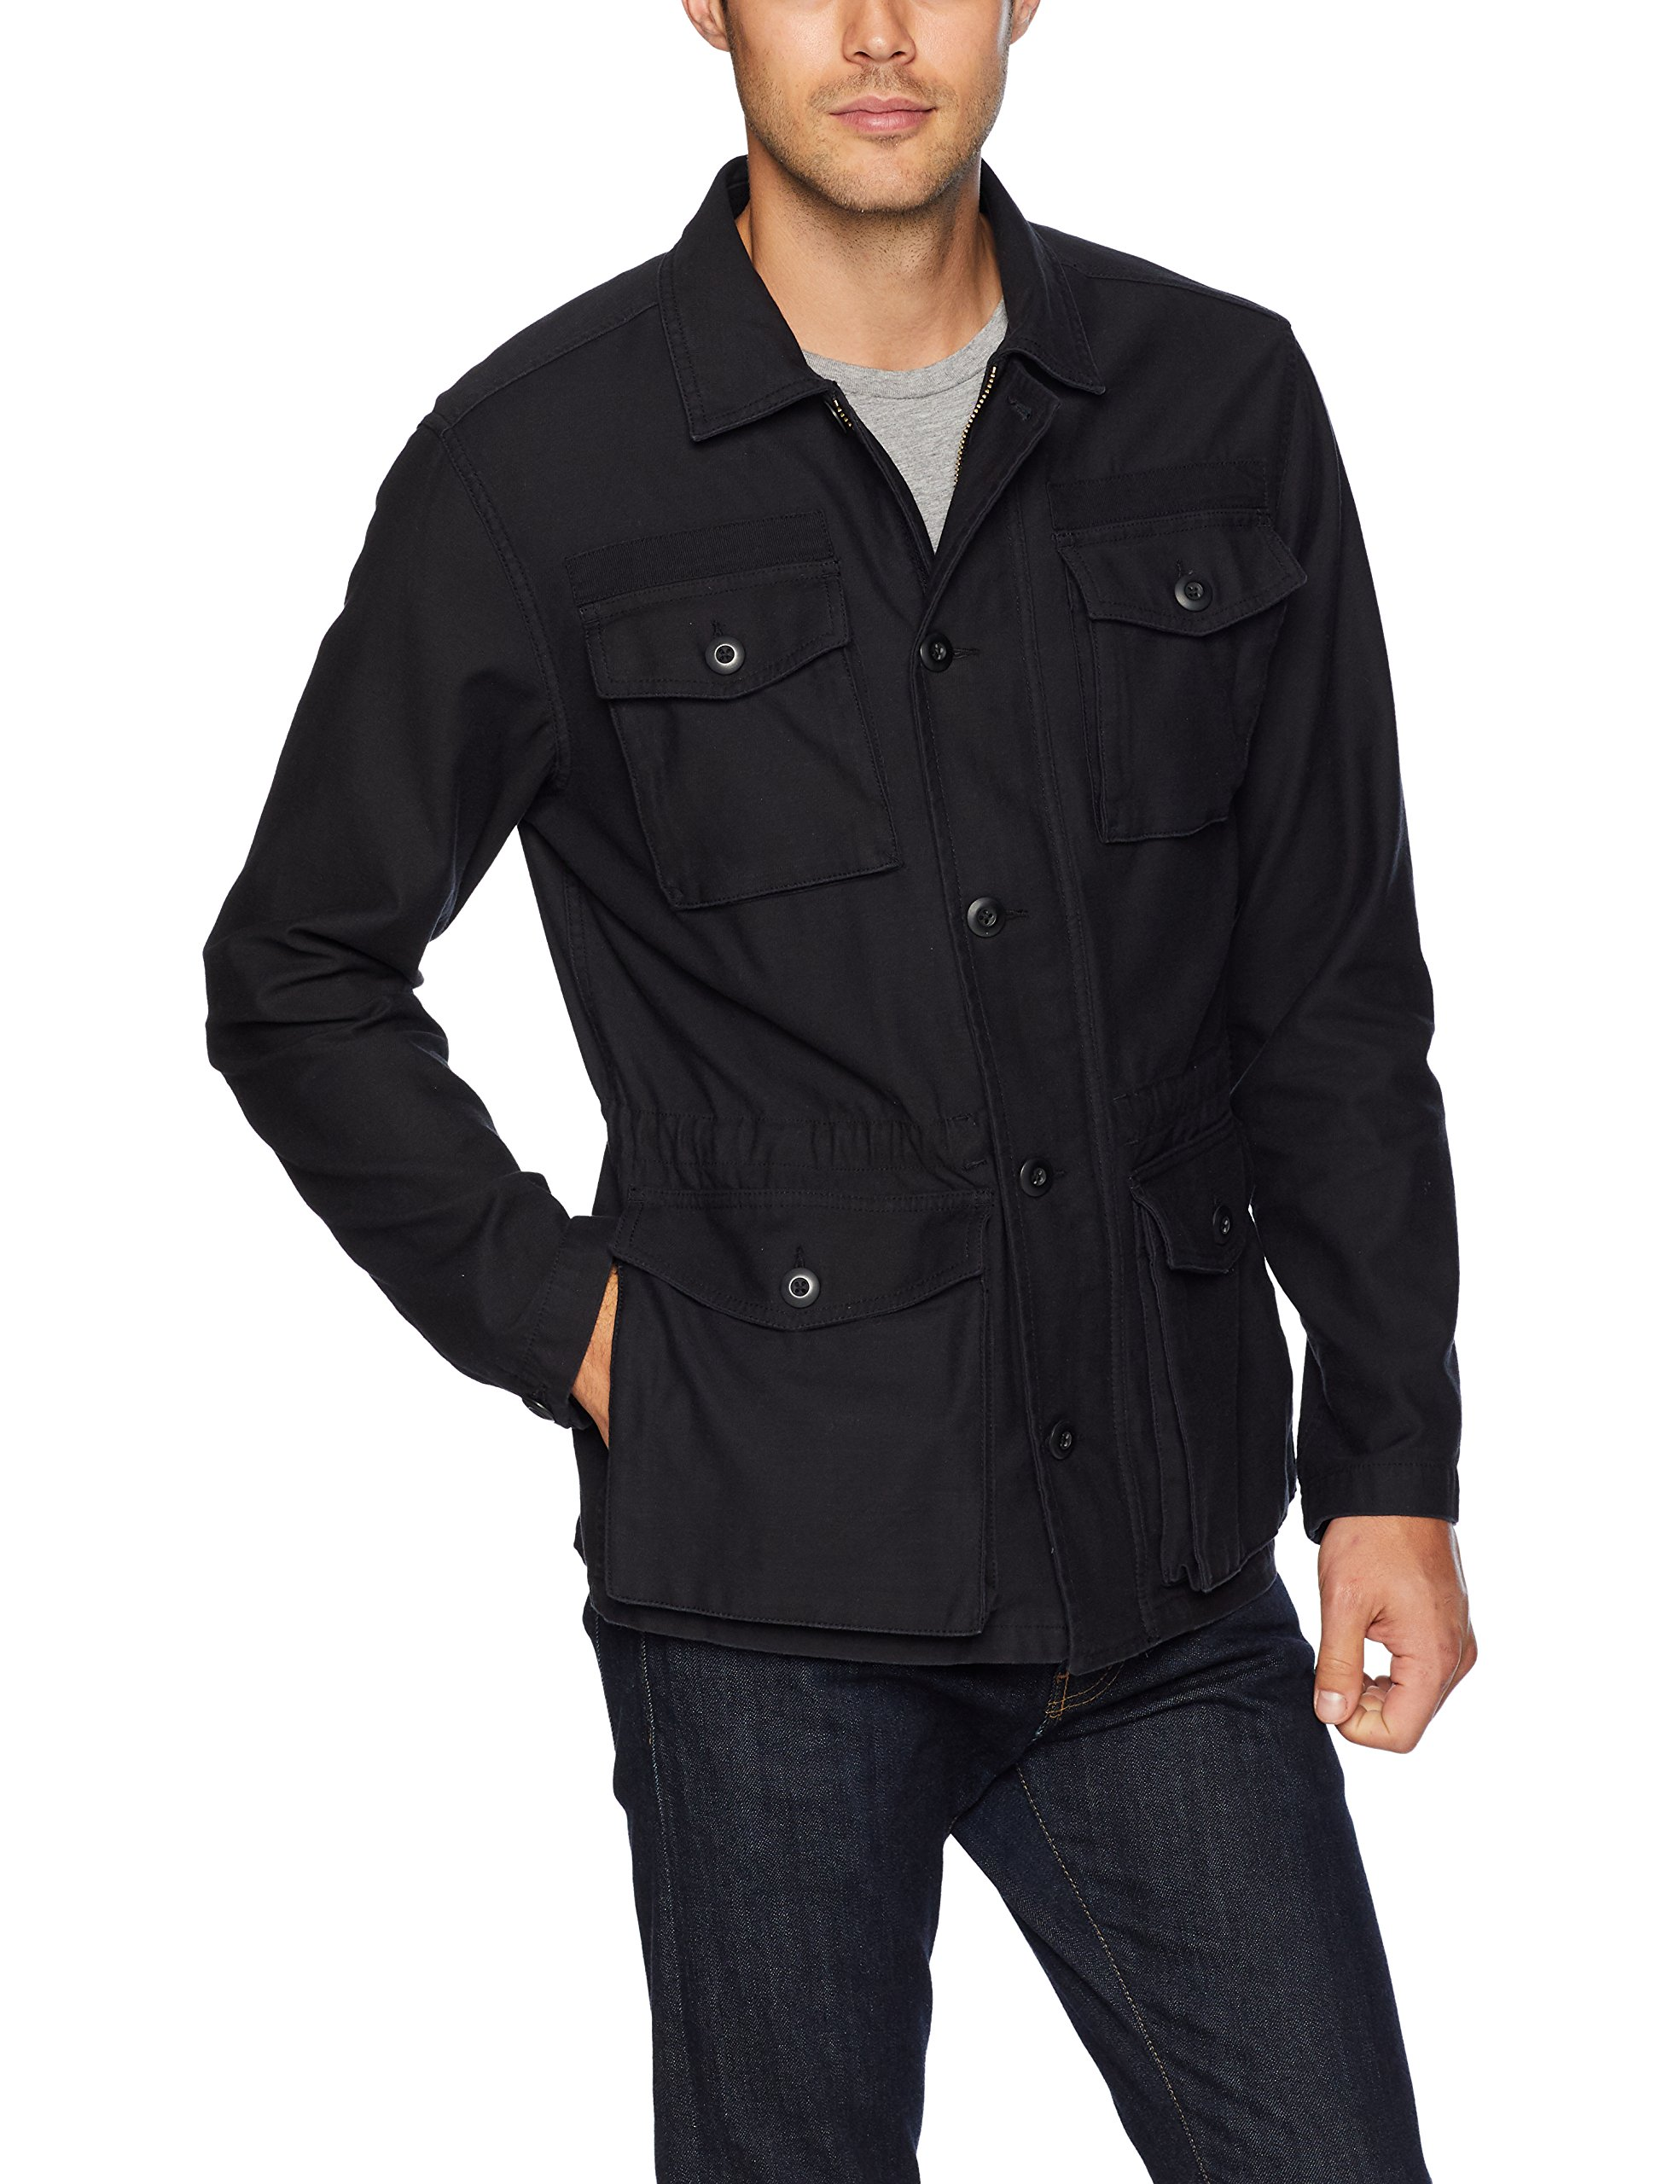 Goodthreads Men's 4-Pocket Military Jacket, Caviar/Black, Large by Goodthreads (Image #1)